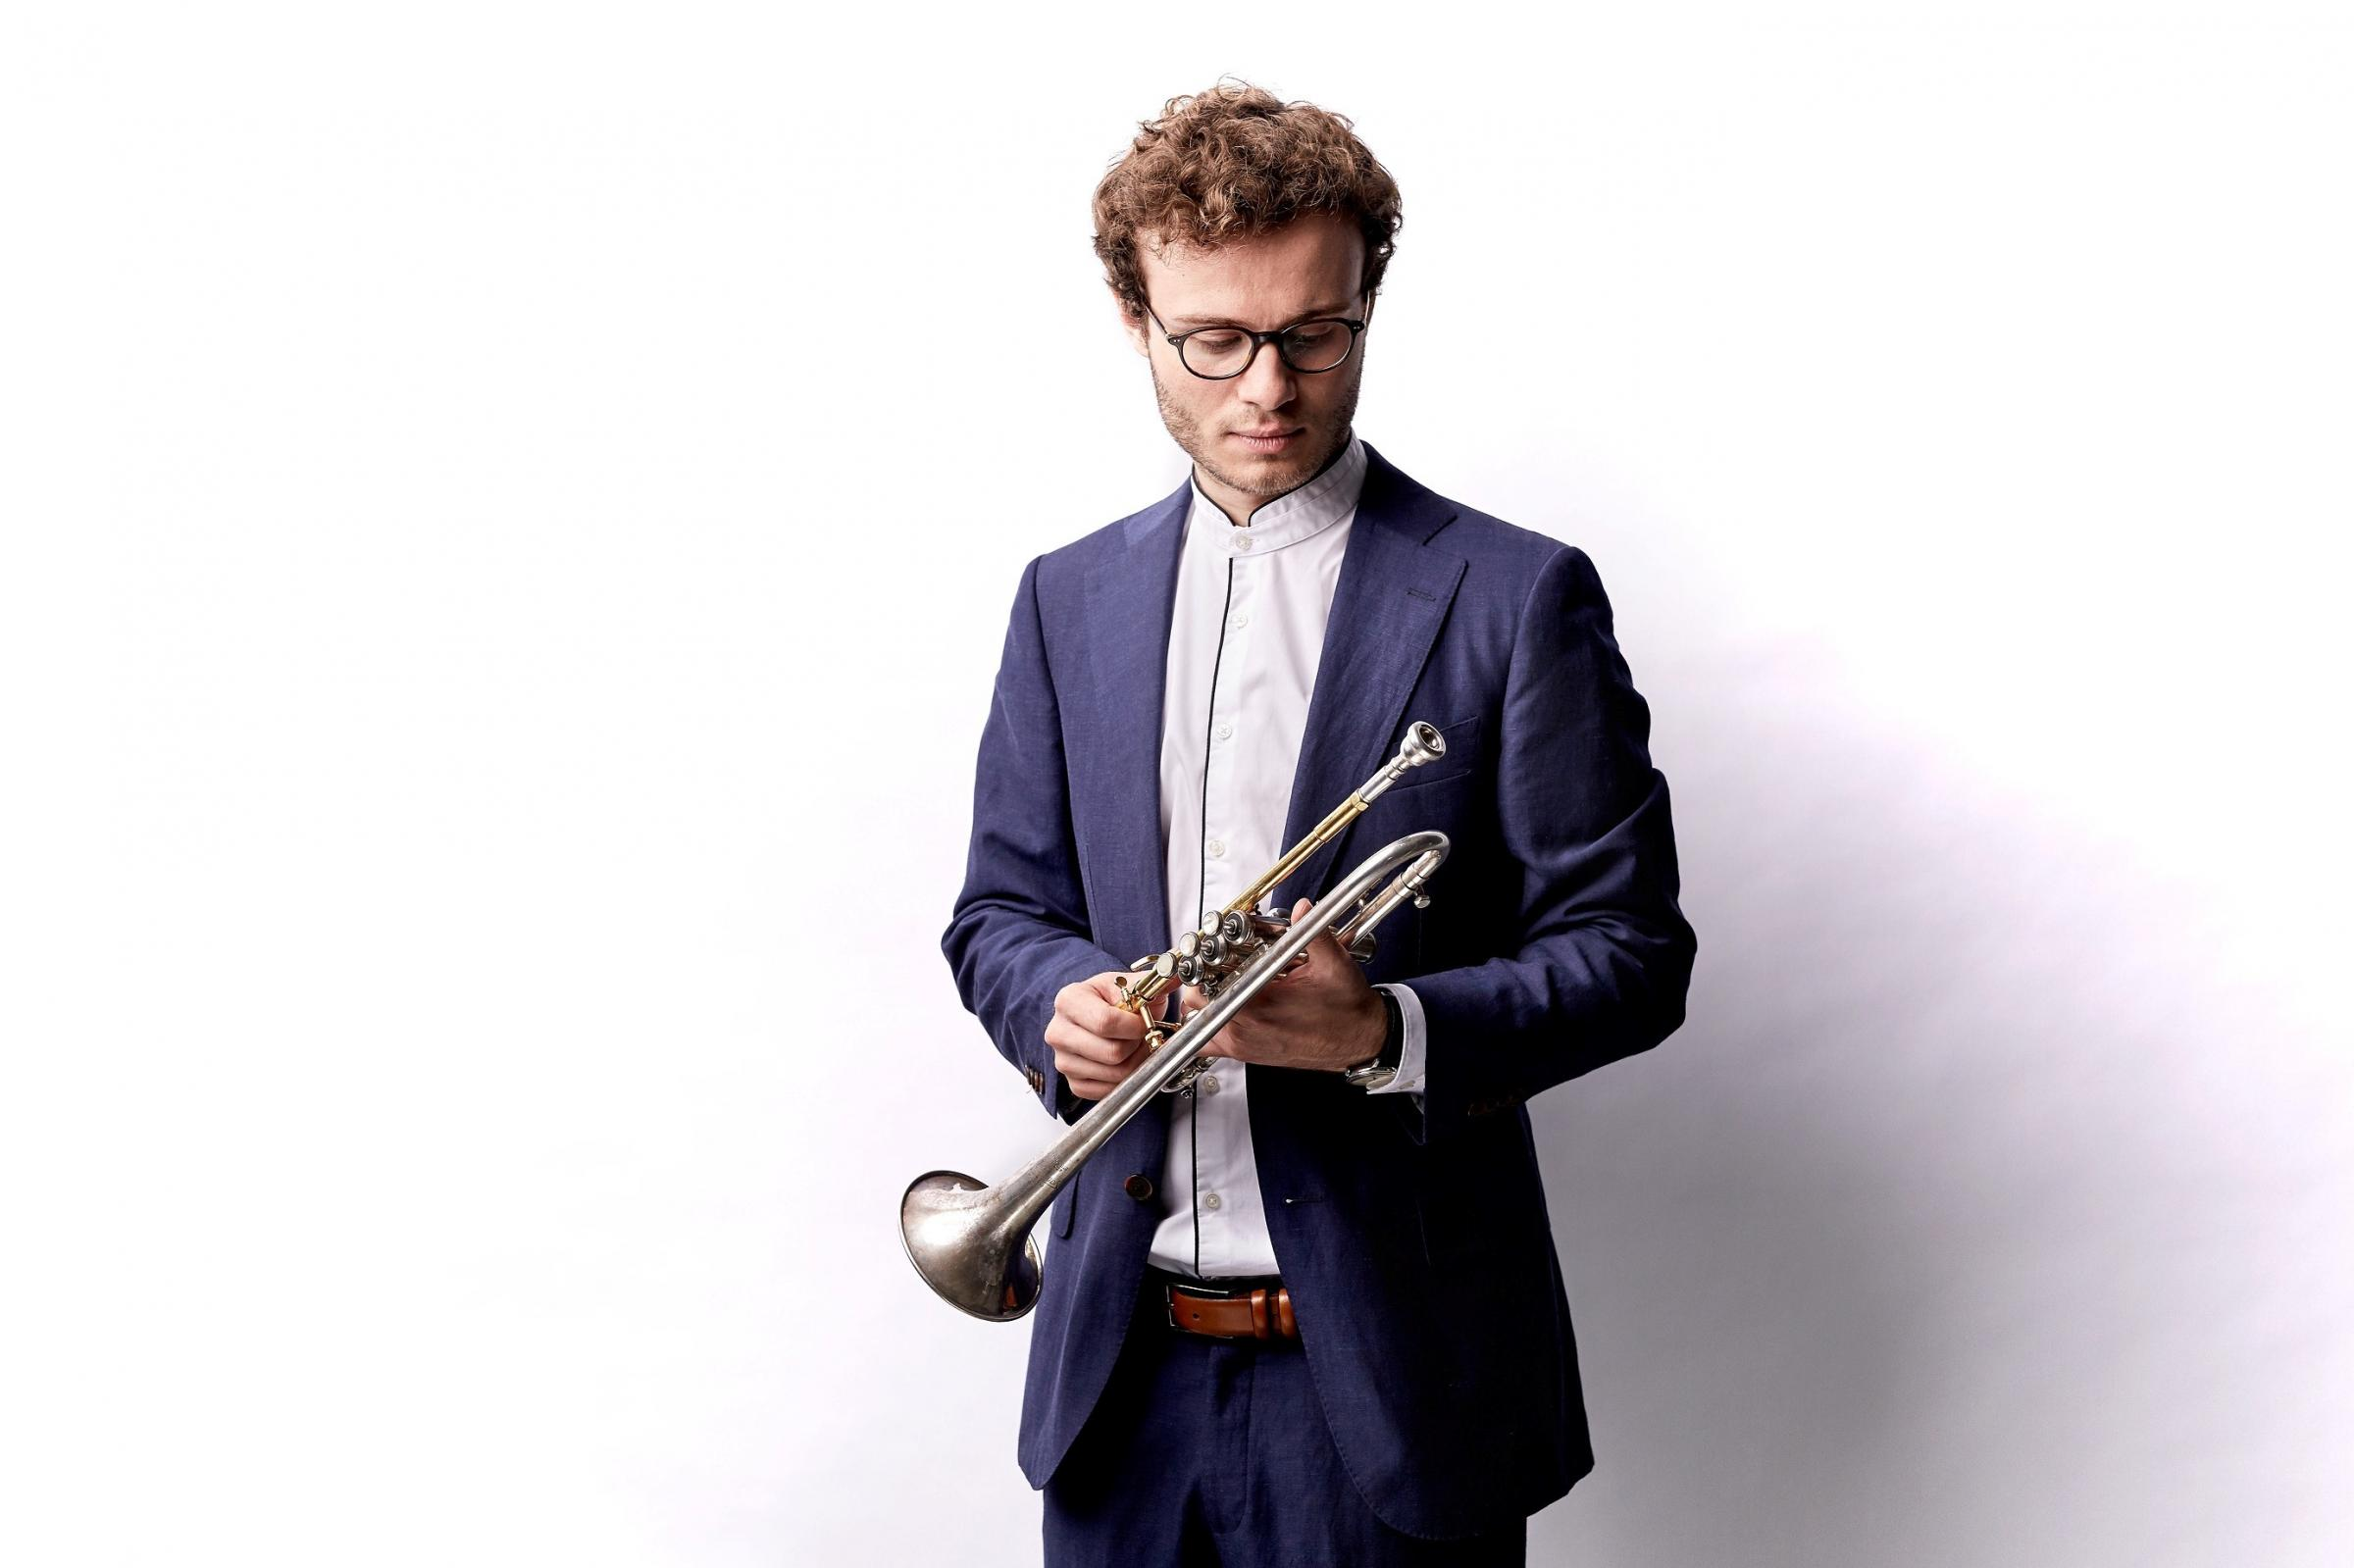 Simon Hofele has appeared with many prestigious orchestras including the Royal Concertgebouw